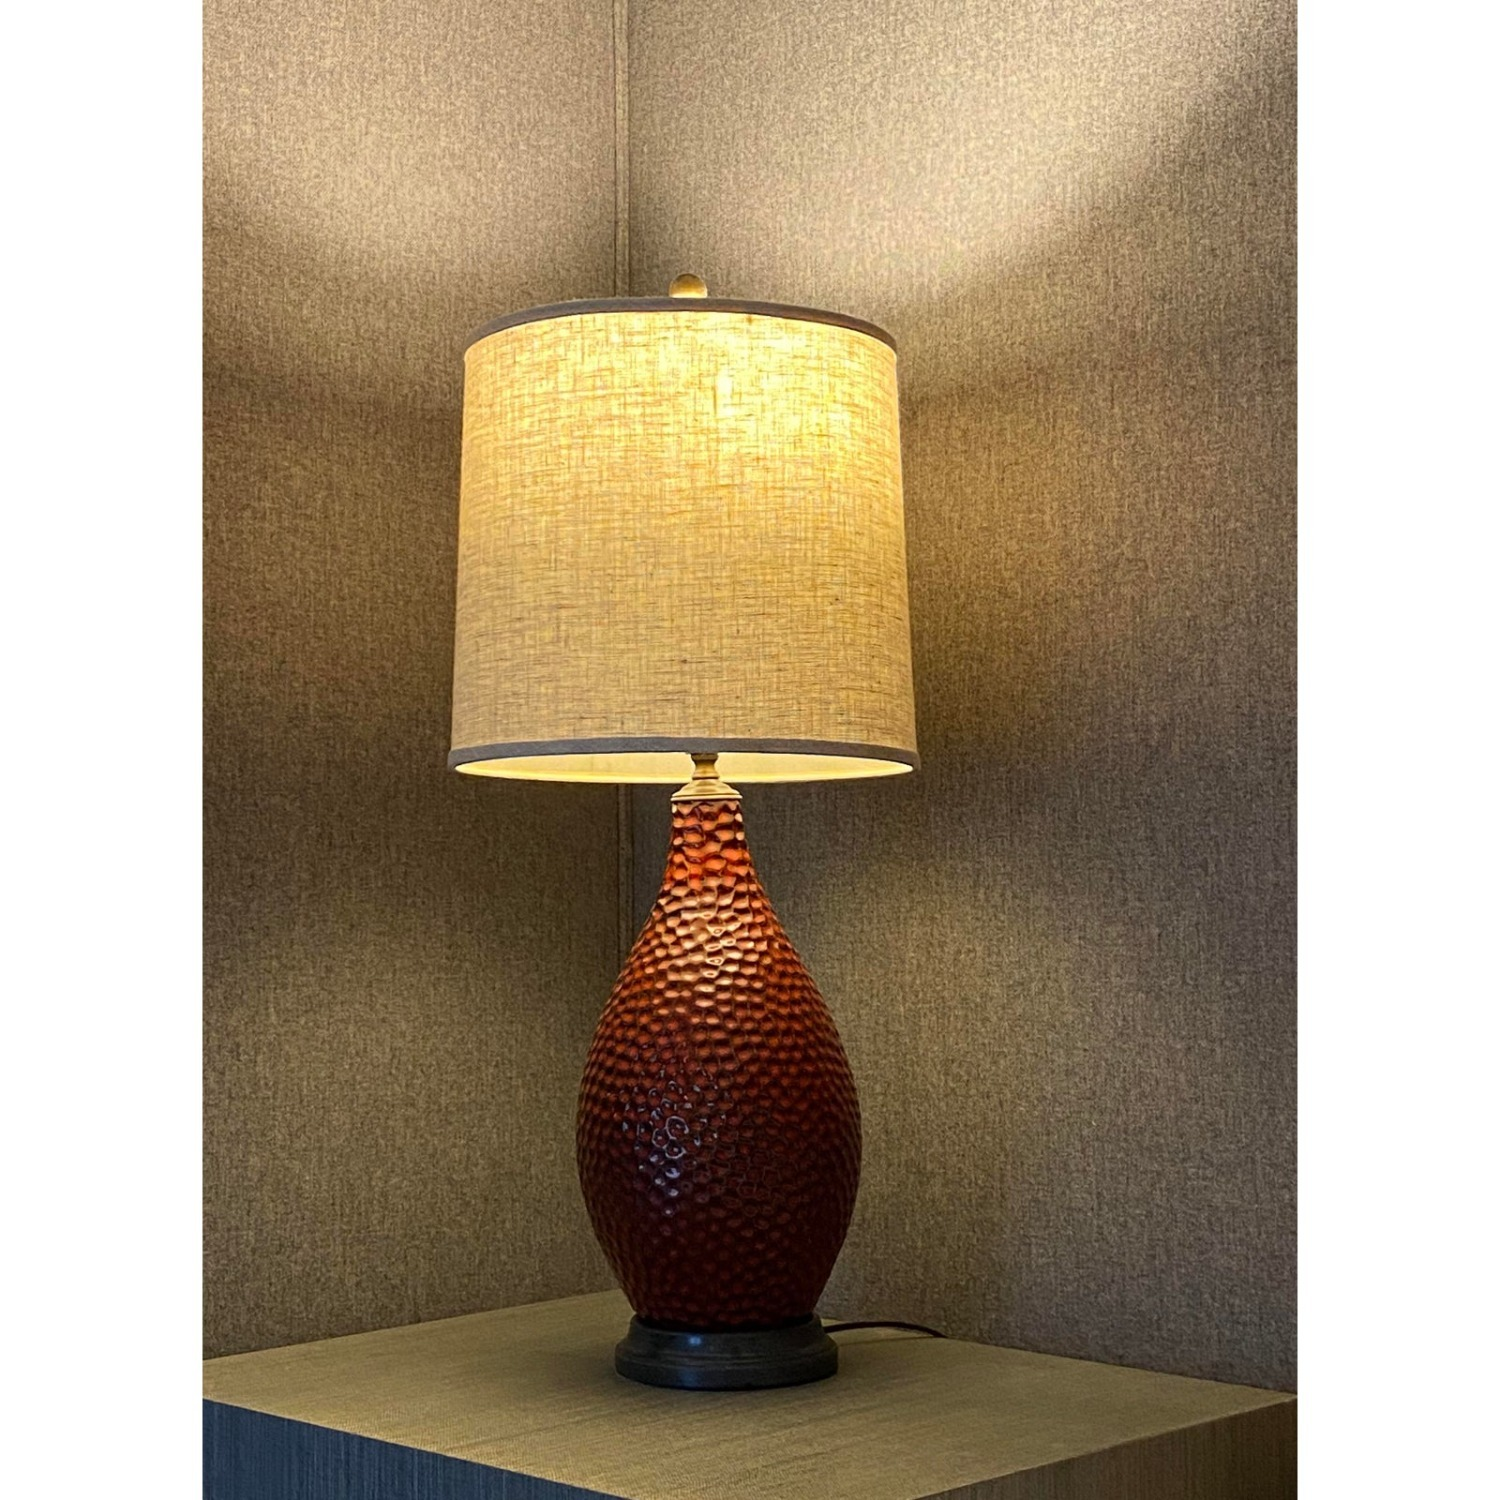 Vintage French Textured Red Ceramic Glazed Lamp - image-2